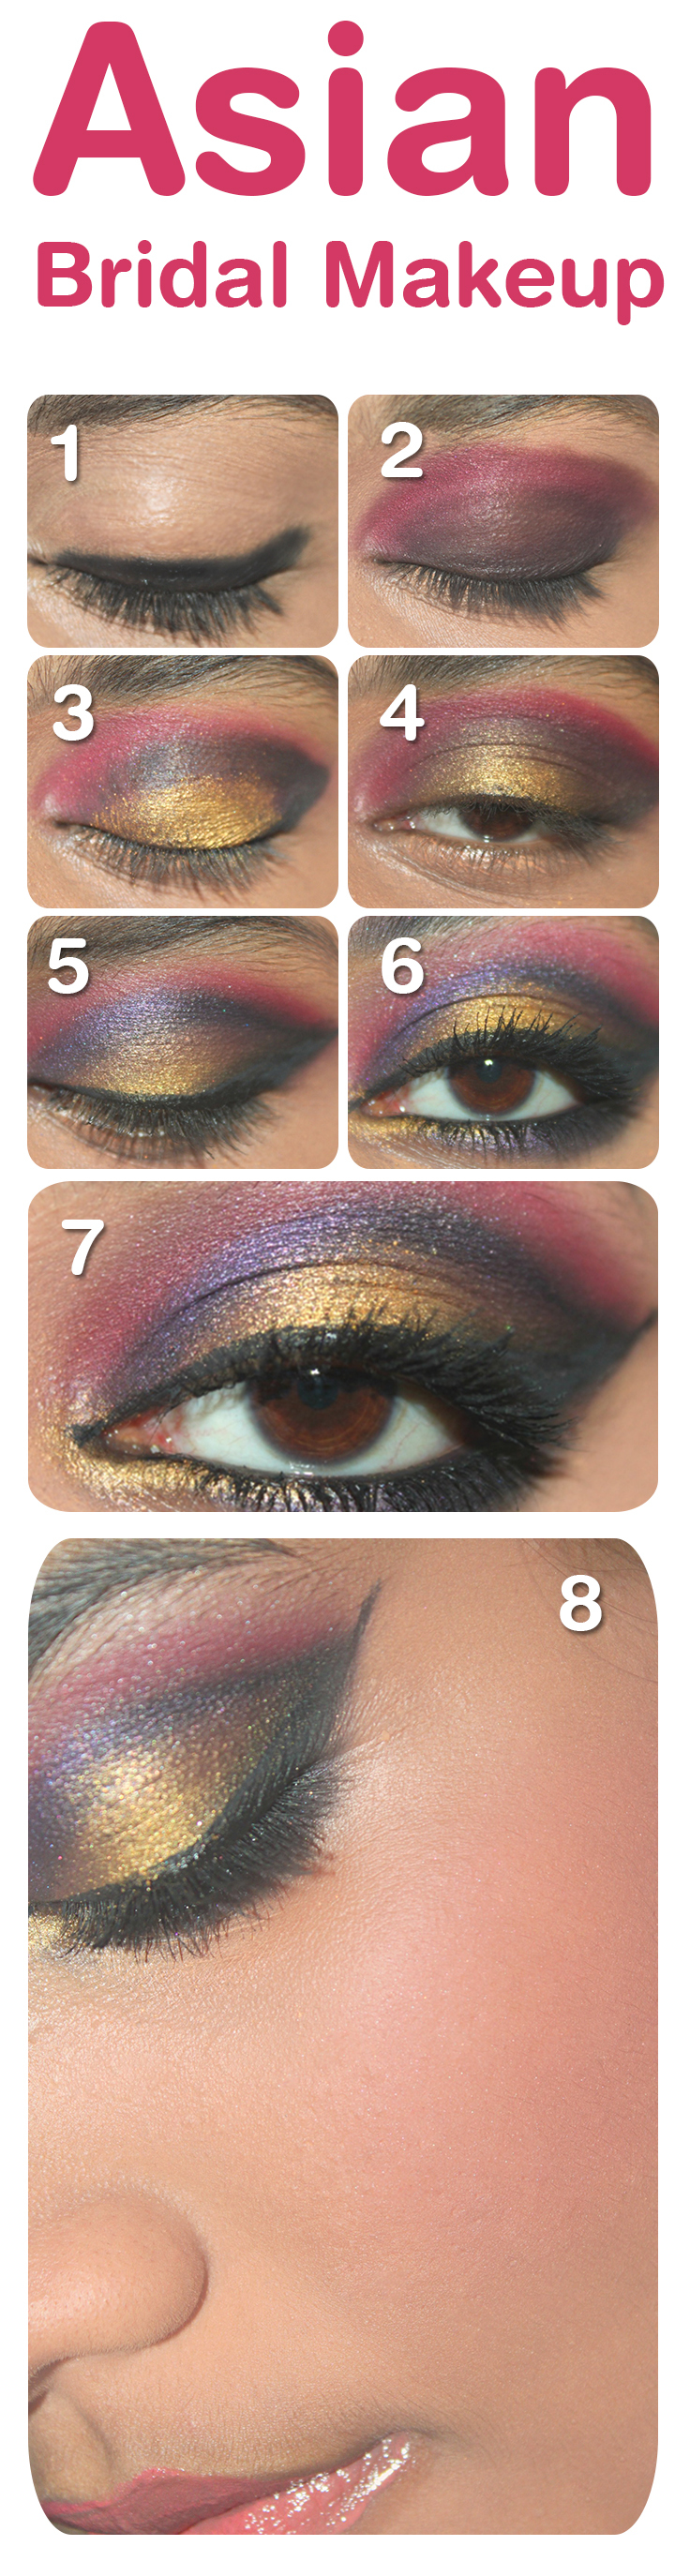 10 Easy Steps For Asian Bridal Makeup Step By Step ...